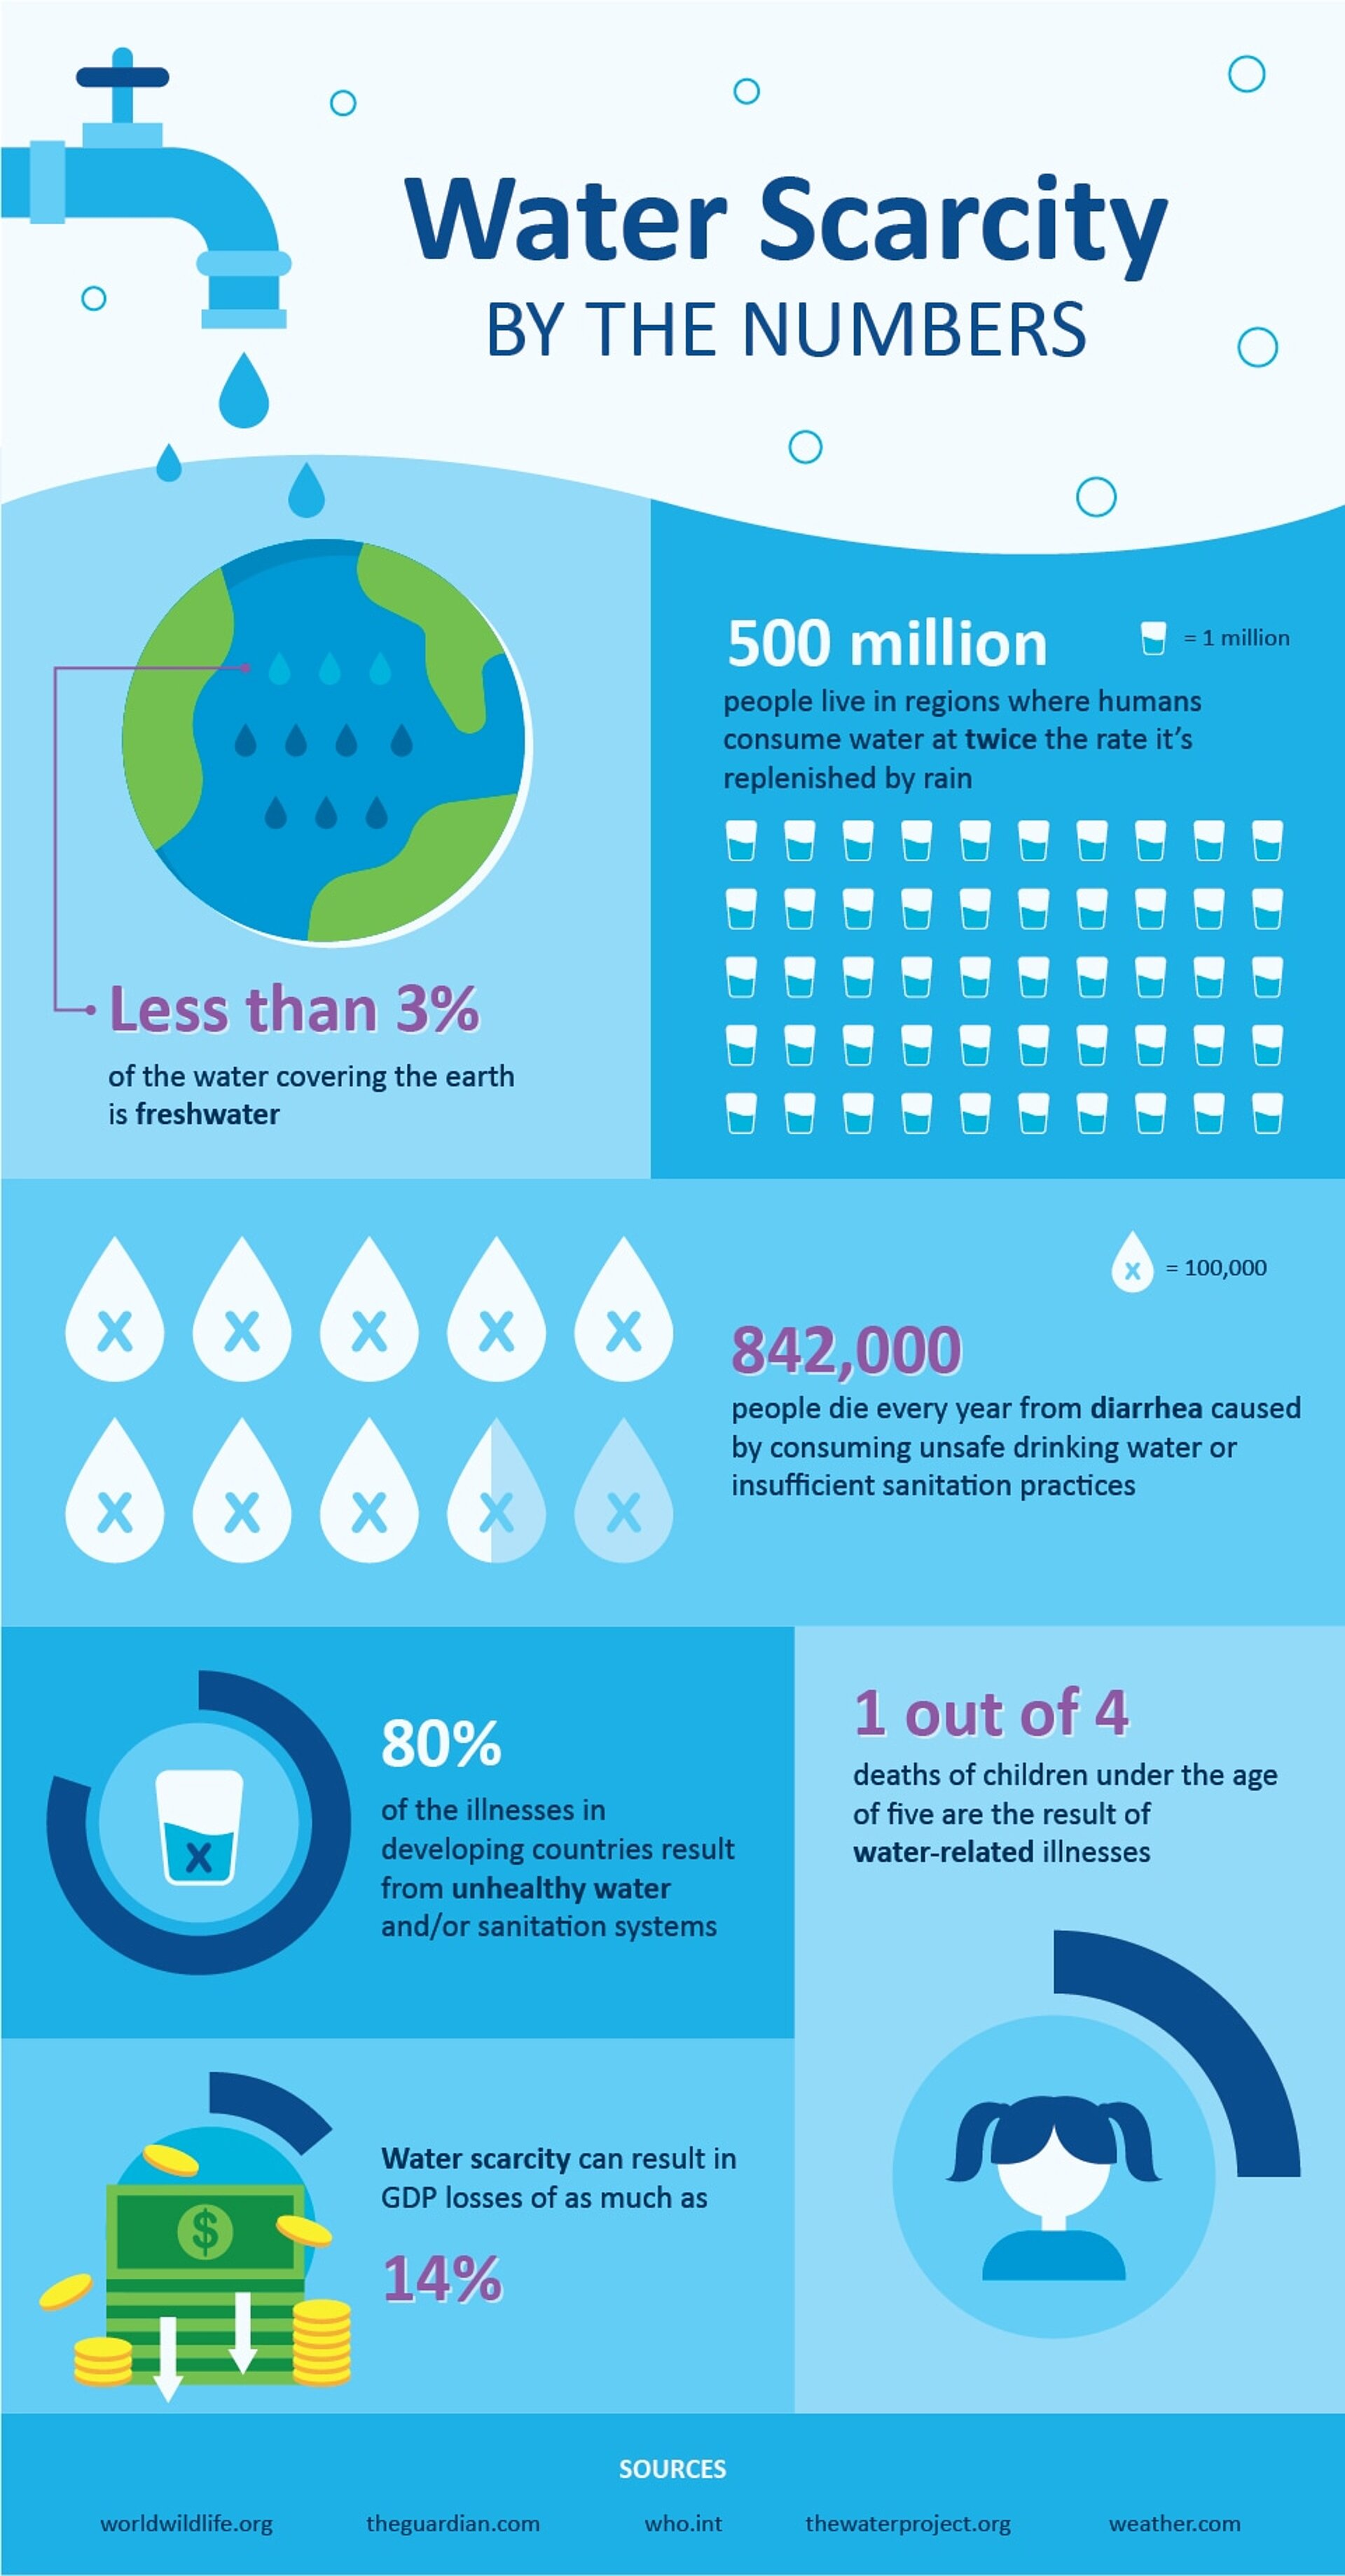 Water scarcity by the numbers